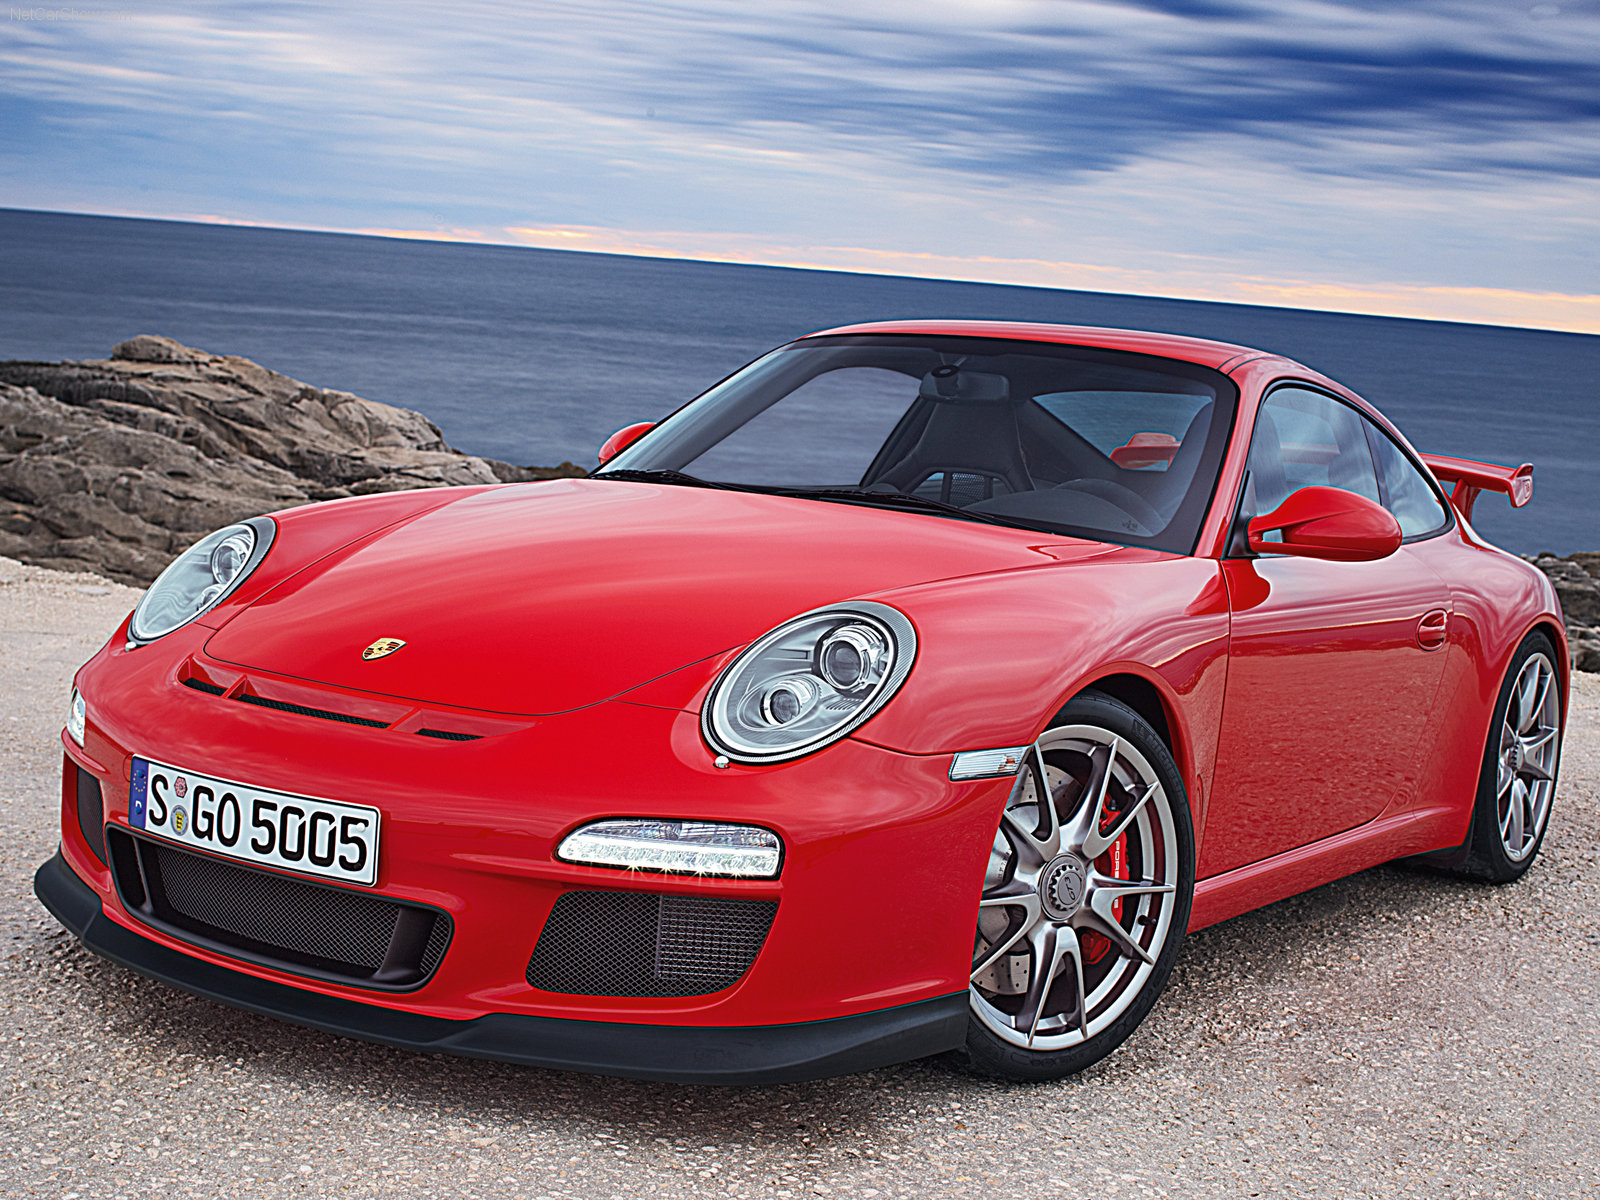 2010 Red Porsche 911 Gt3 Wallpapers HD Wallpapers Download free images and photos [musssic.tk]